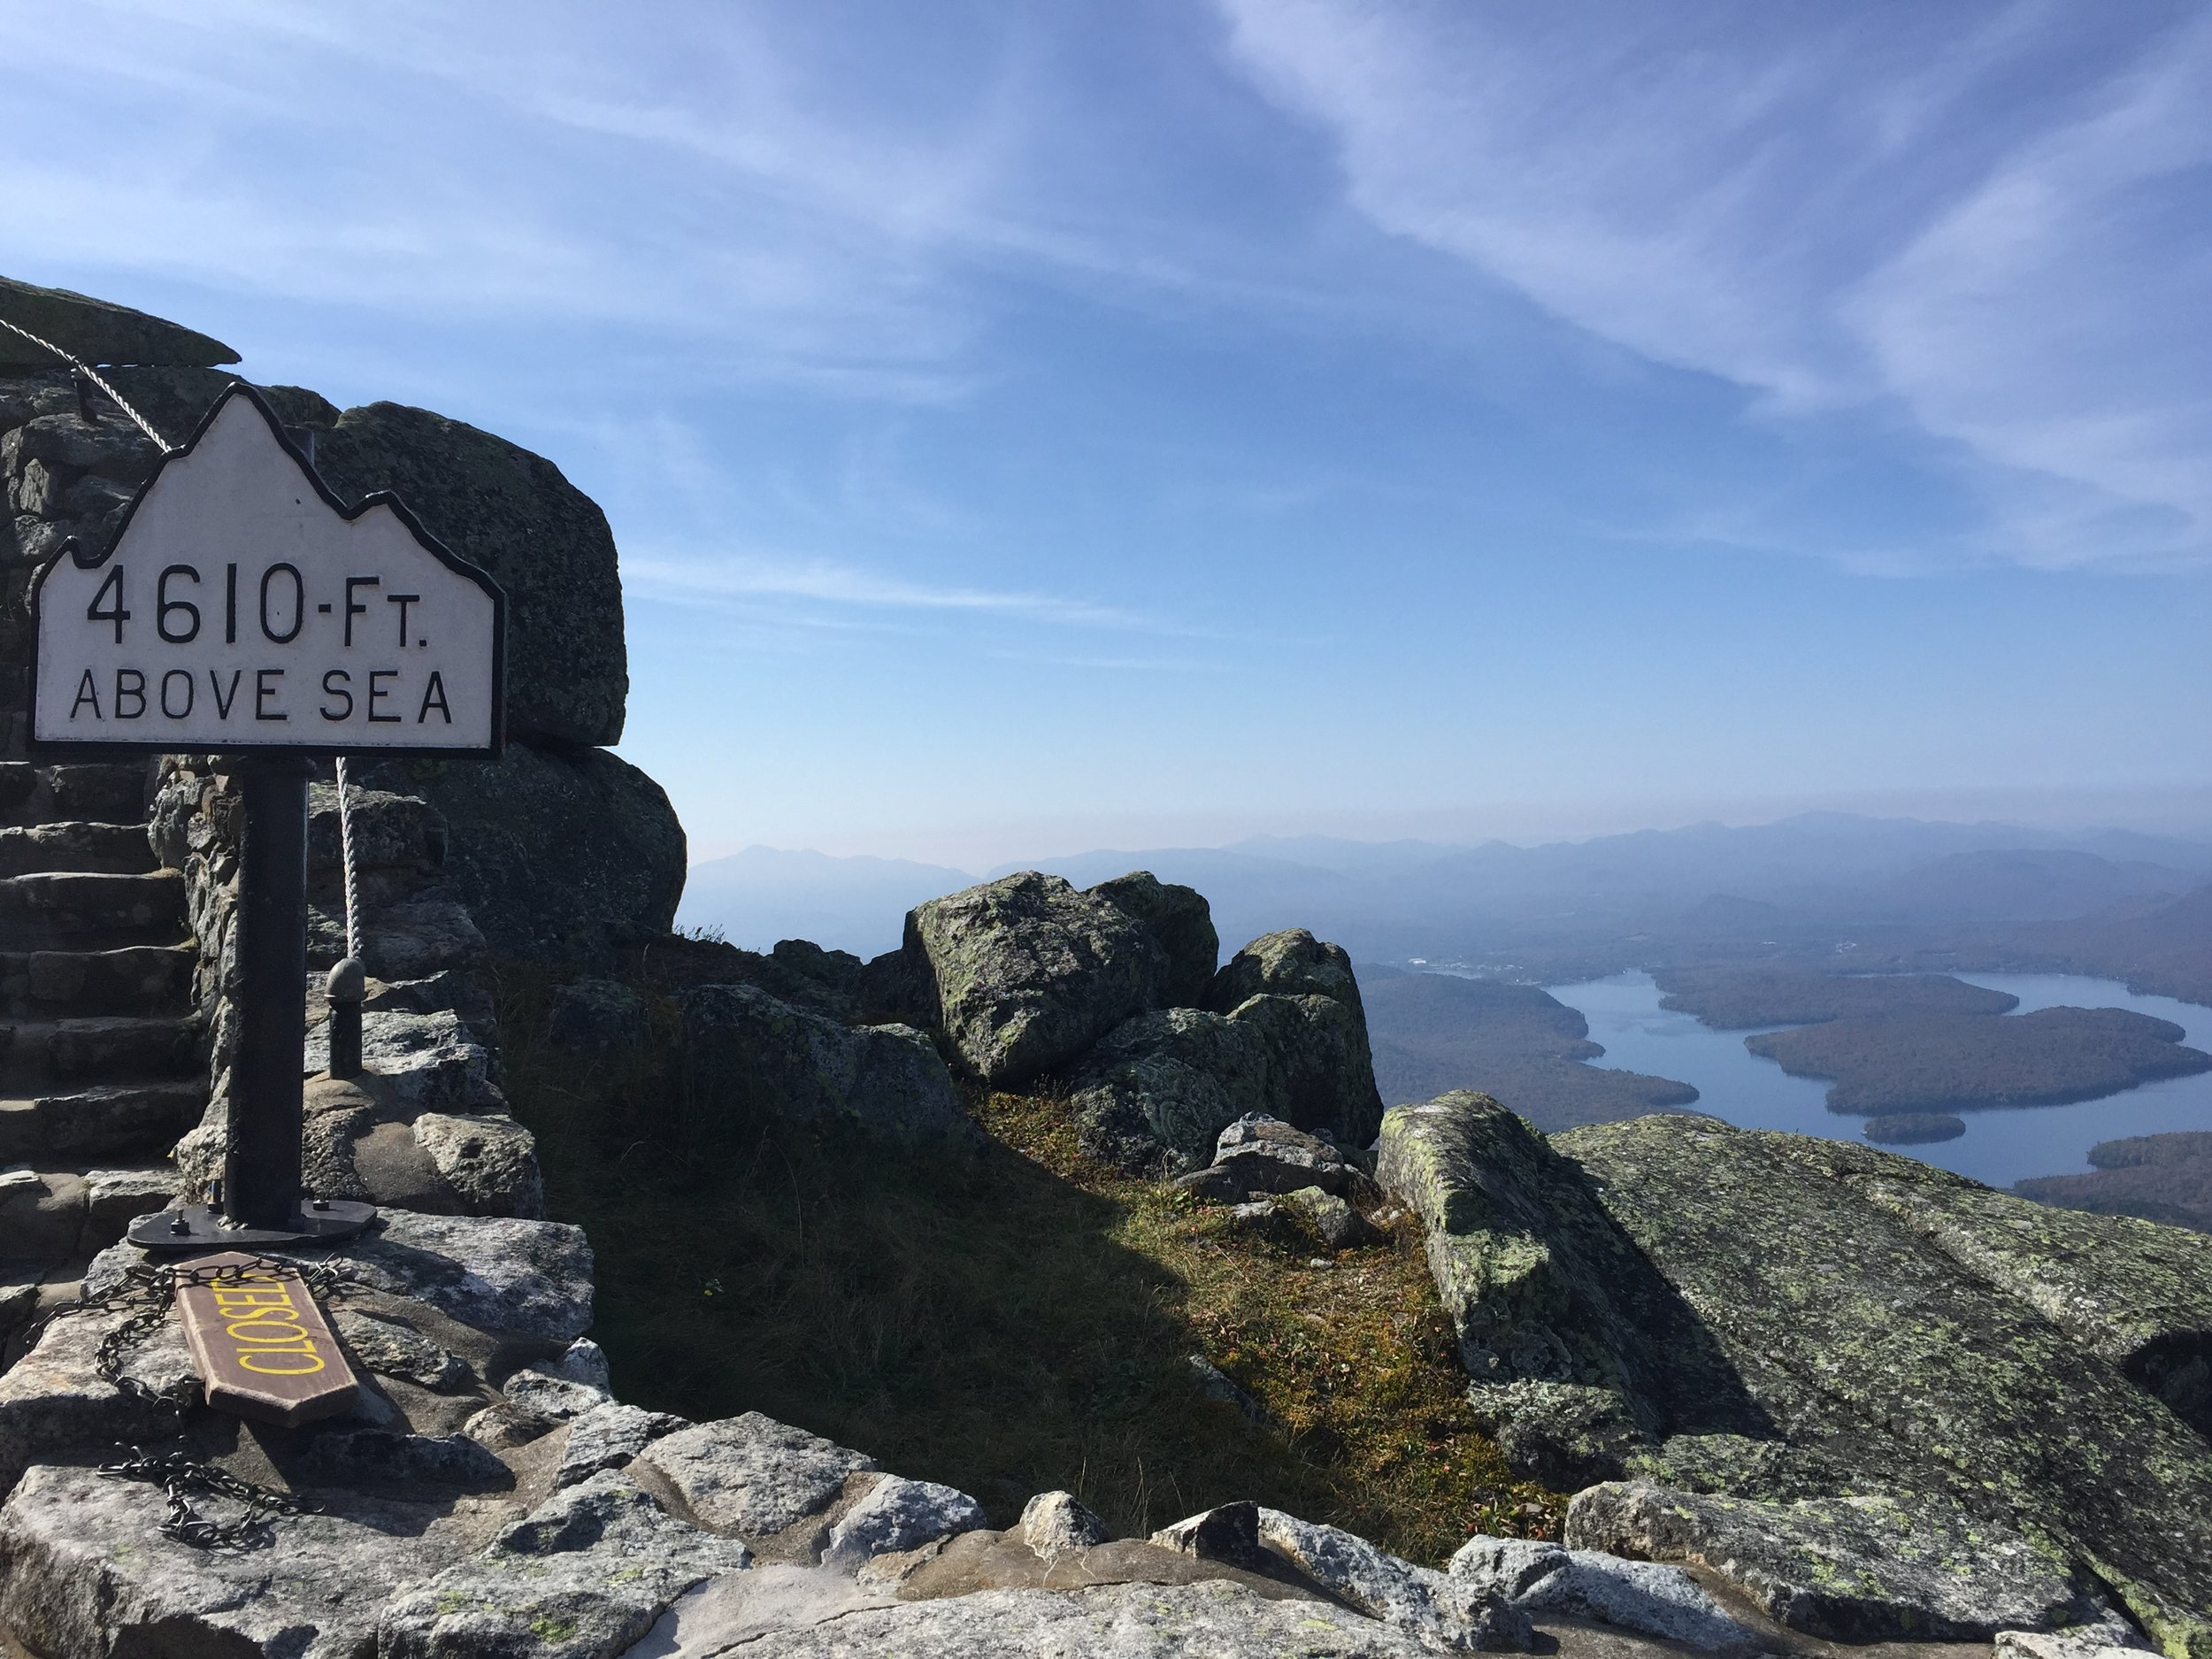 The quintessential photo taken by nearly every guy in our group: The sea level sign with Lake Placid proper in the background. The stairs led to the Summit Cafe.